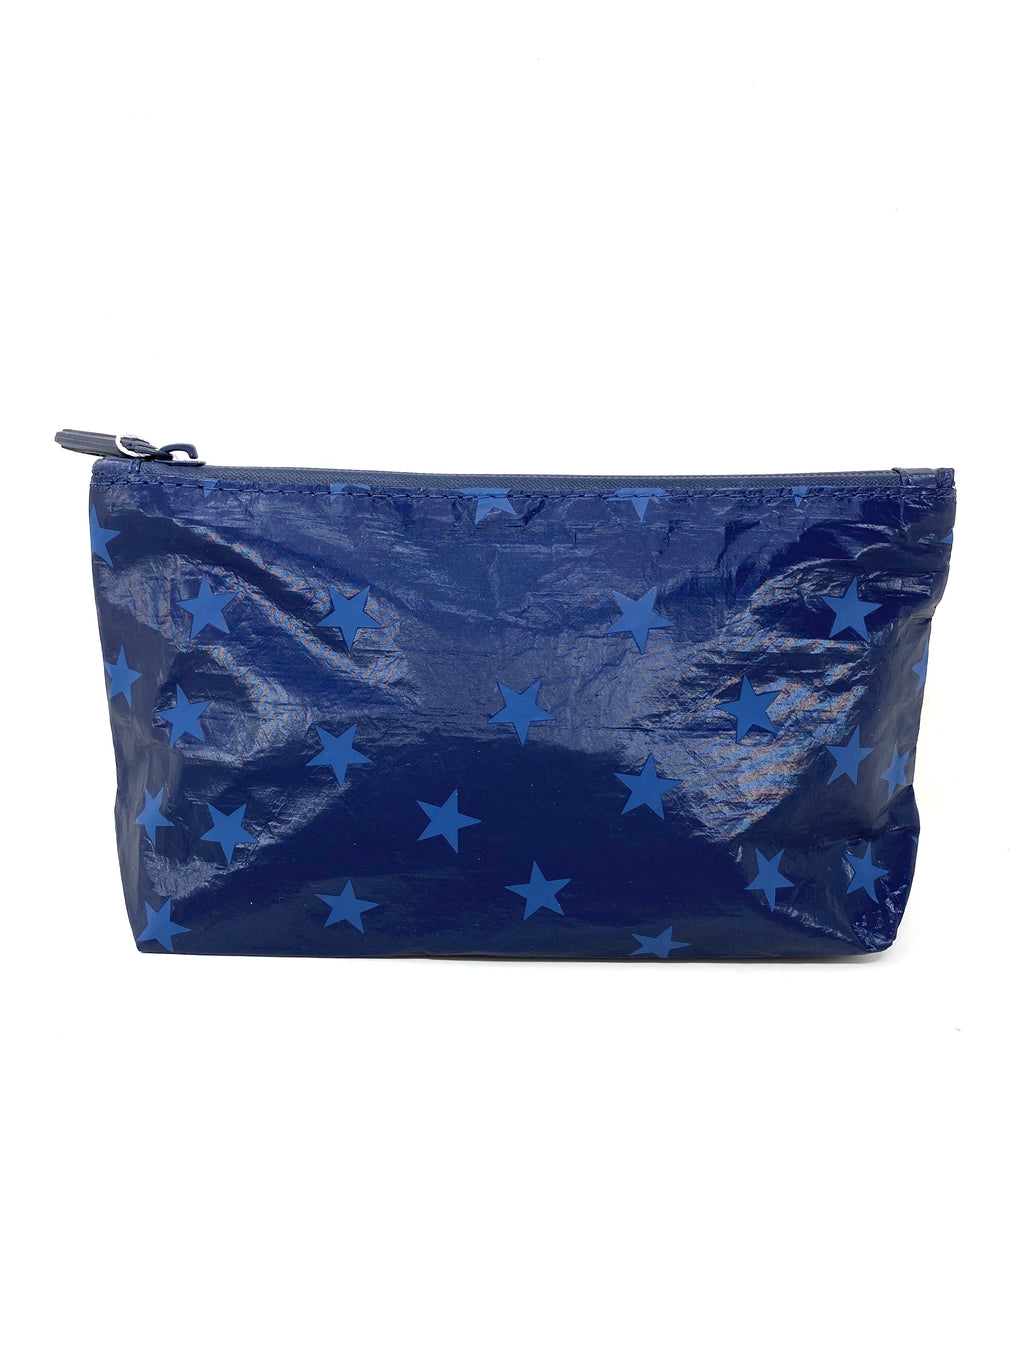 Hi Love Travel Small Pouch in Navy Shimmer with Myriad Stars